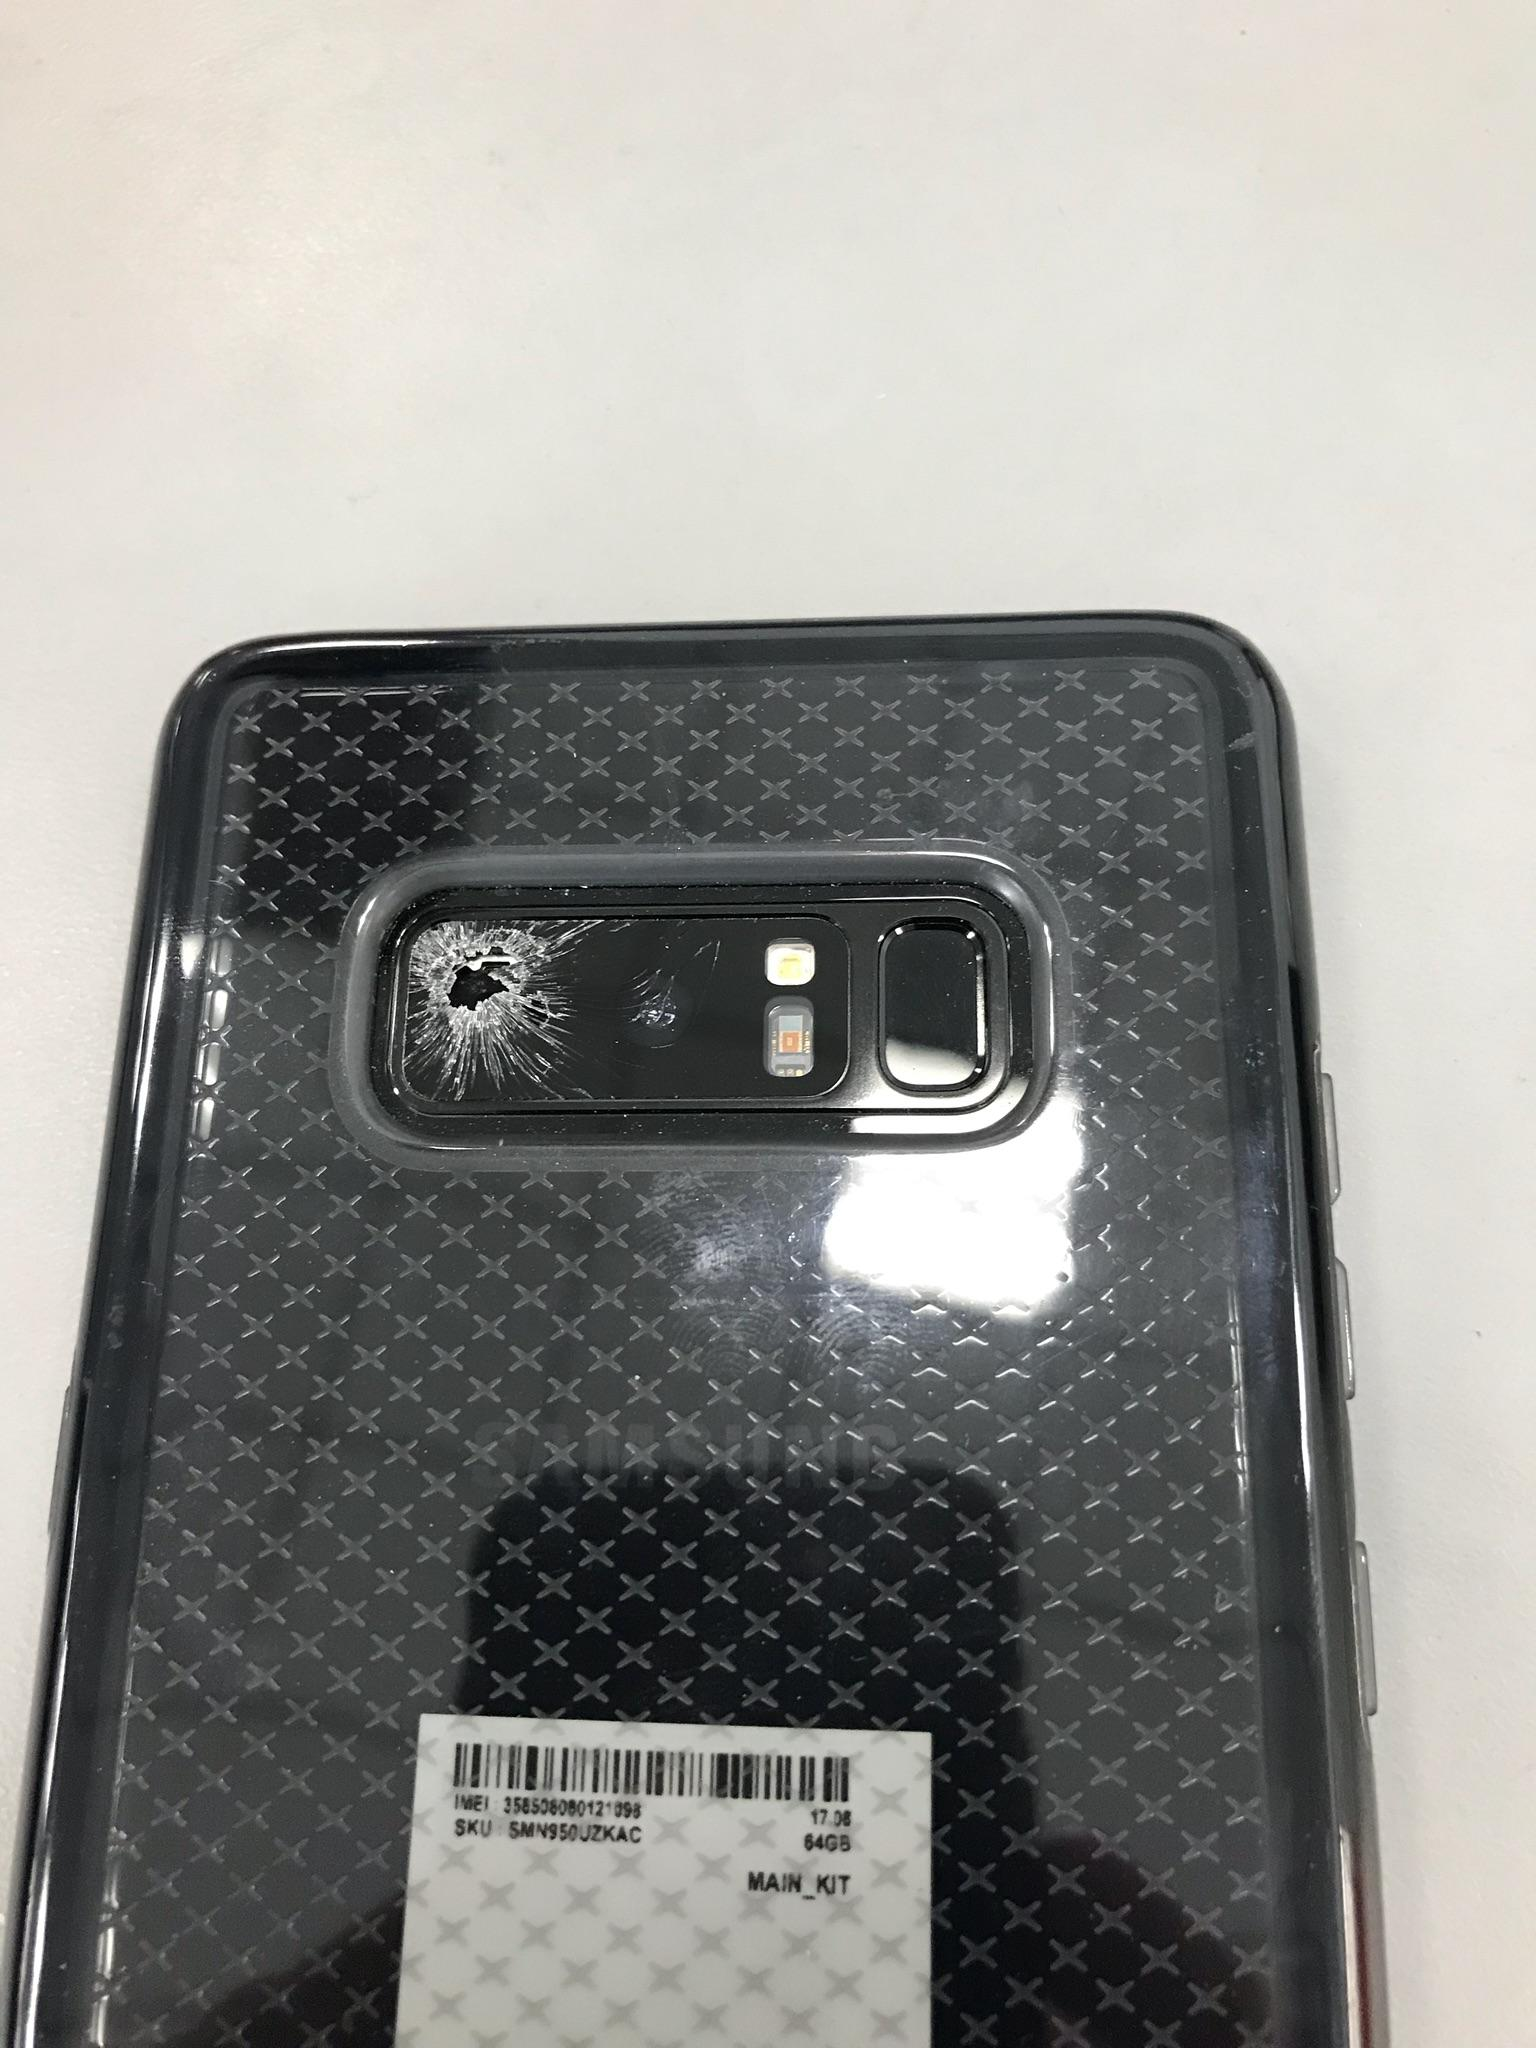 Solved: Galaxy Note 8 rear camera glass cracked - Samsung Community